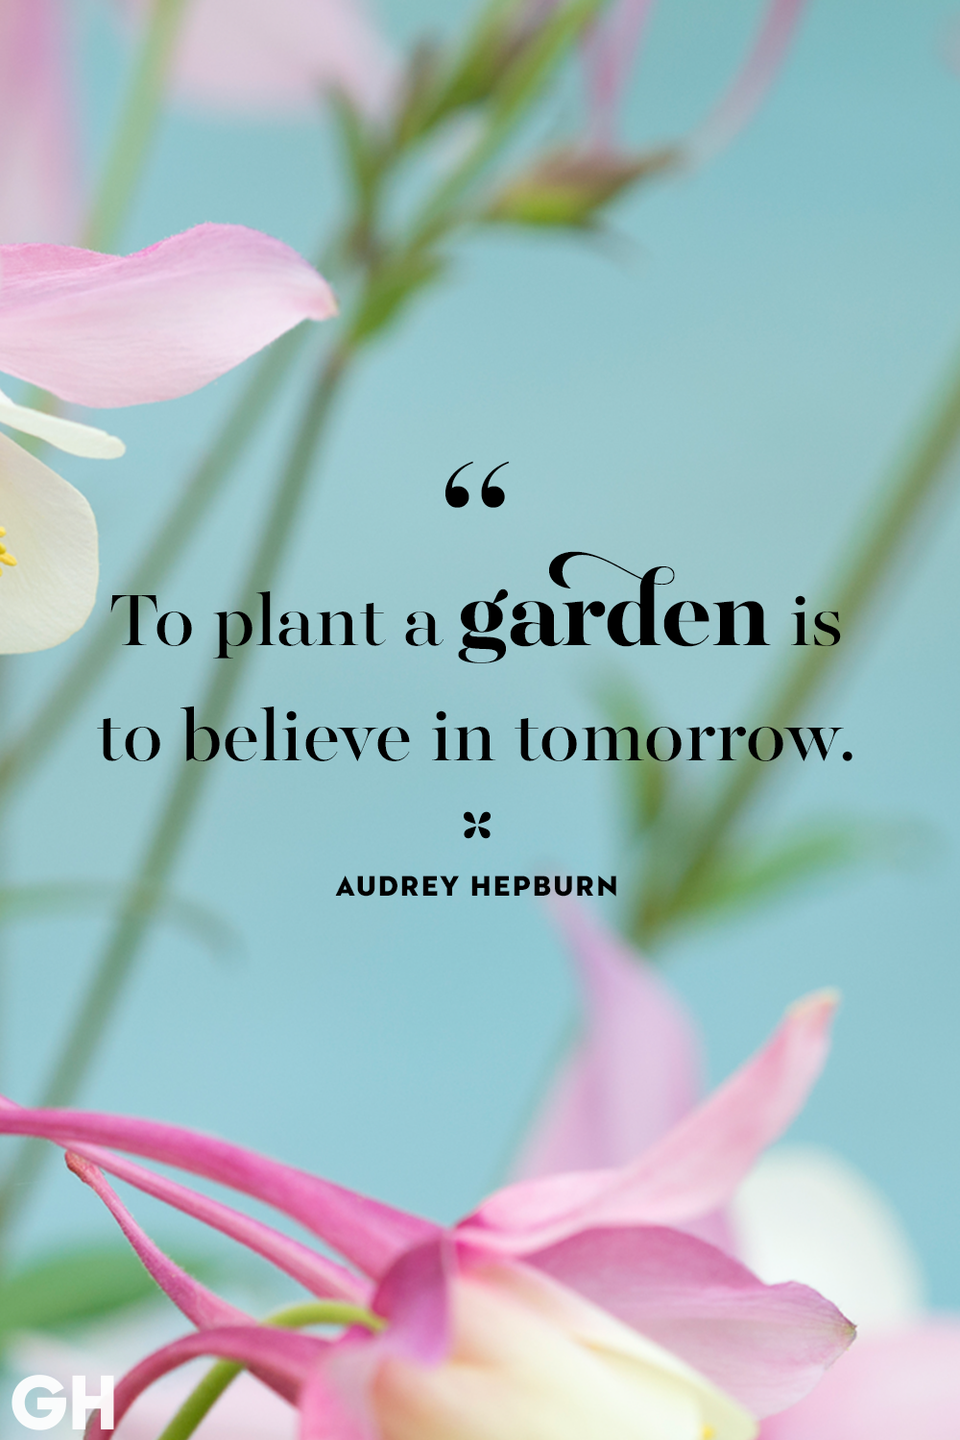 <p>To plant a garden is to believe in tomorrow.</p>